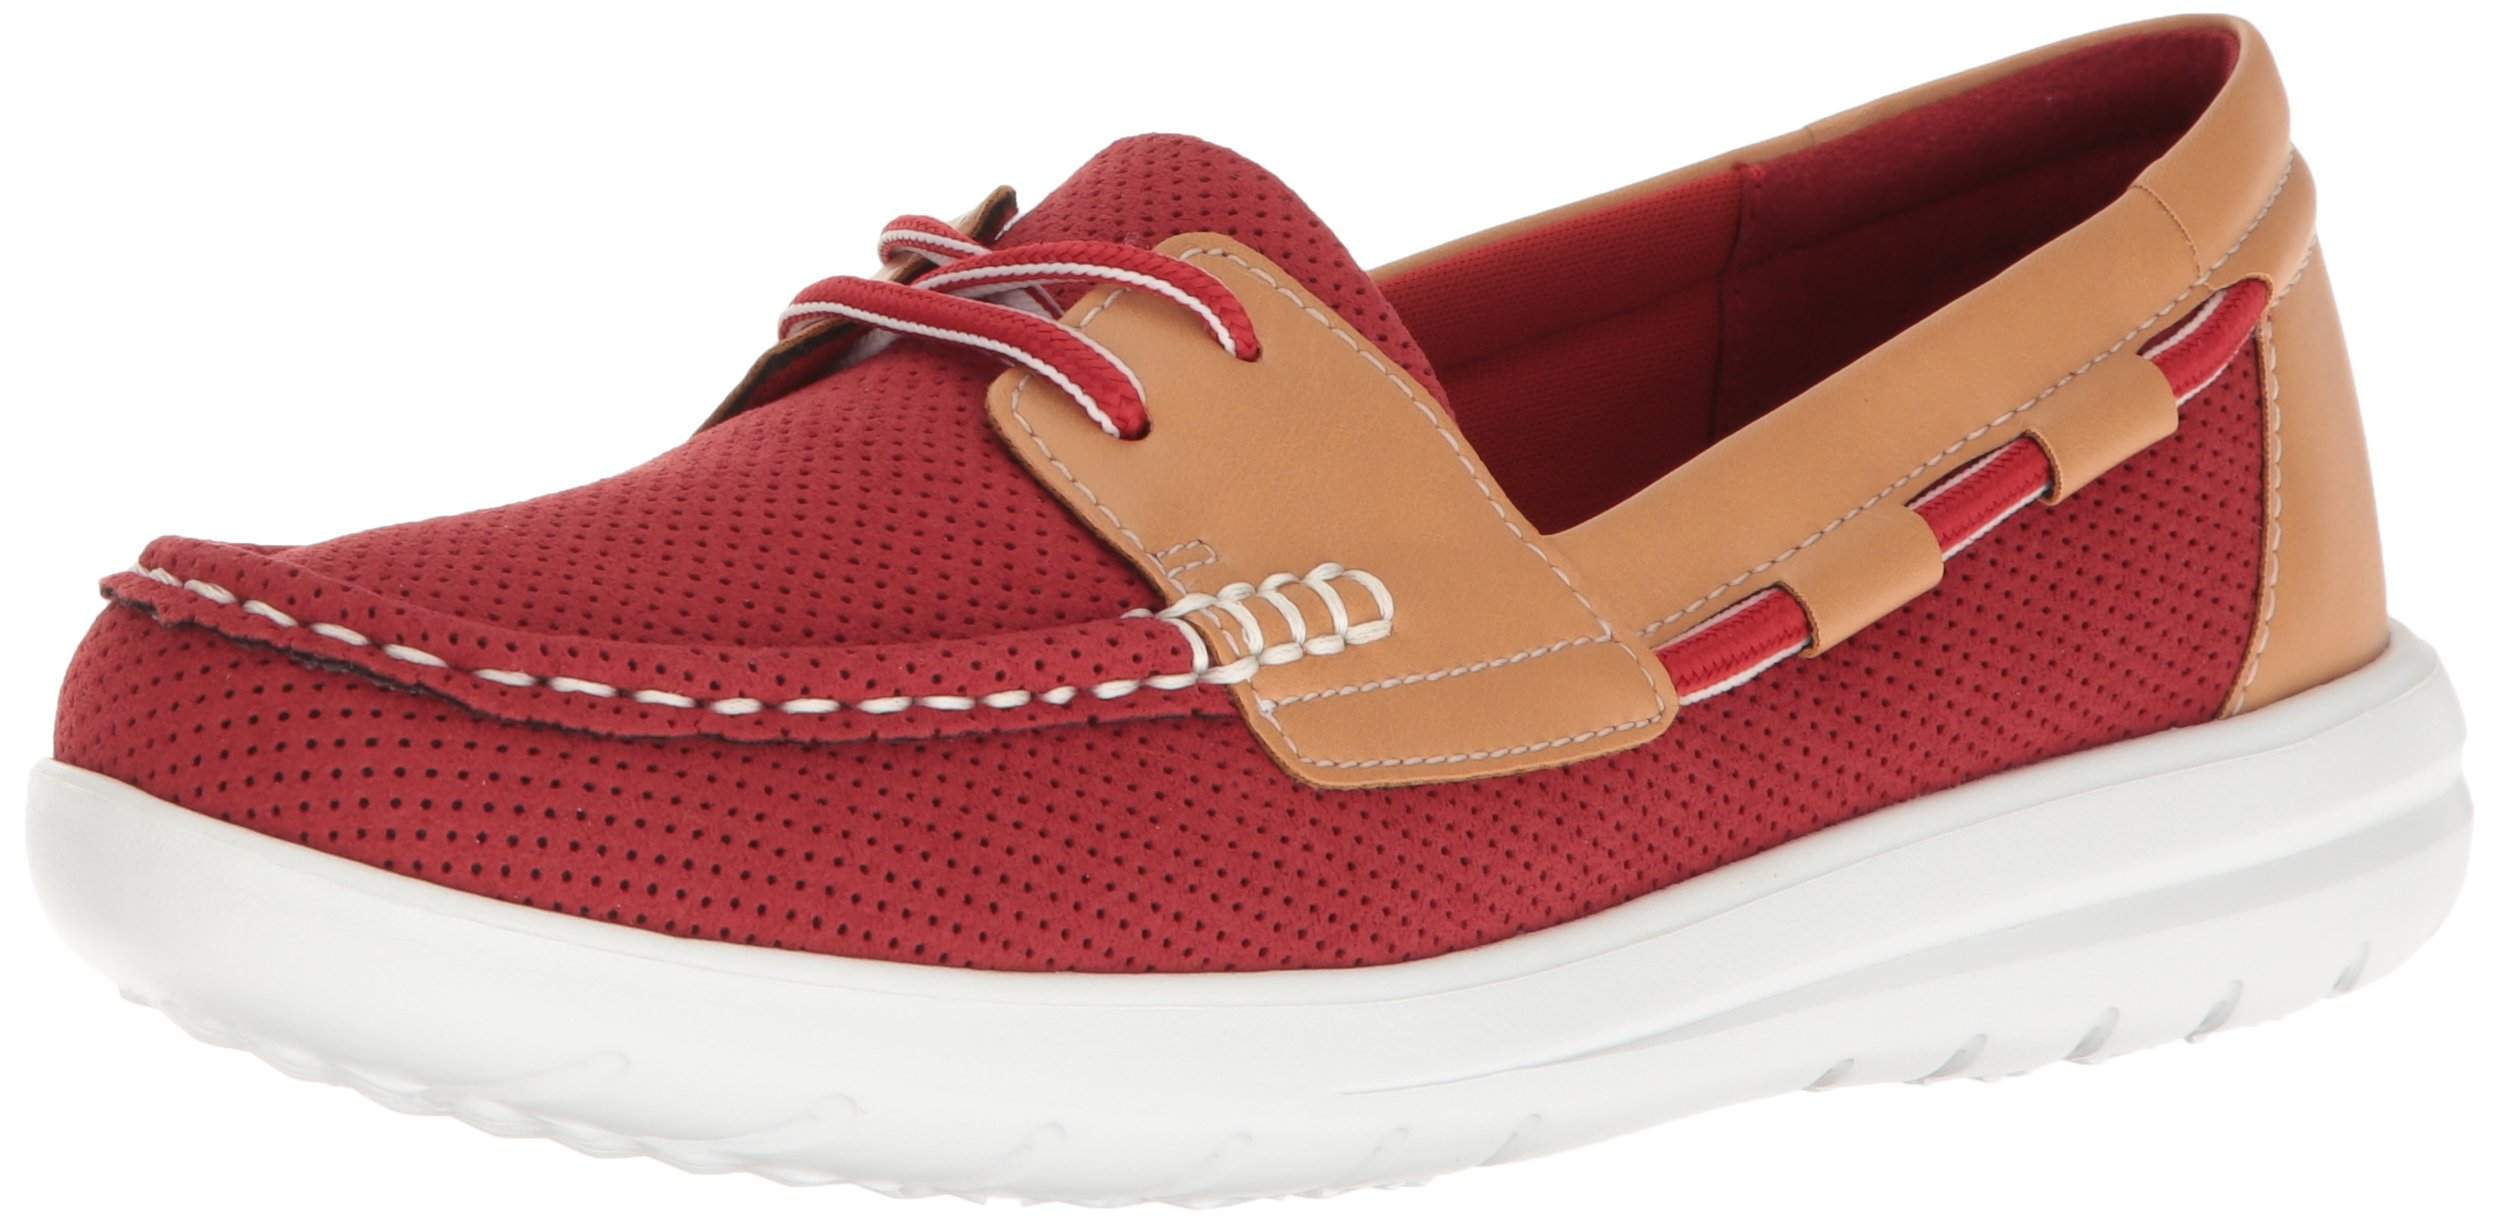 CLARKS Women's Jocolin Vista Boat Shoe, Red Perforated Microfiber, 12 B(M) US by CLARKS (Image #1)